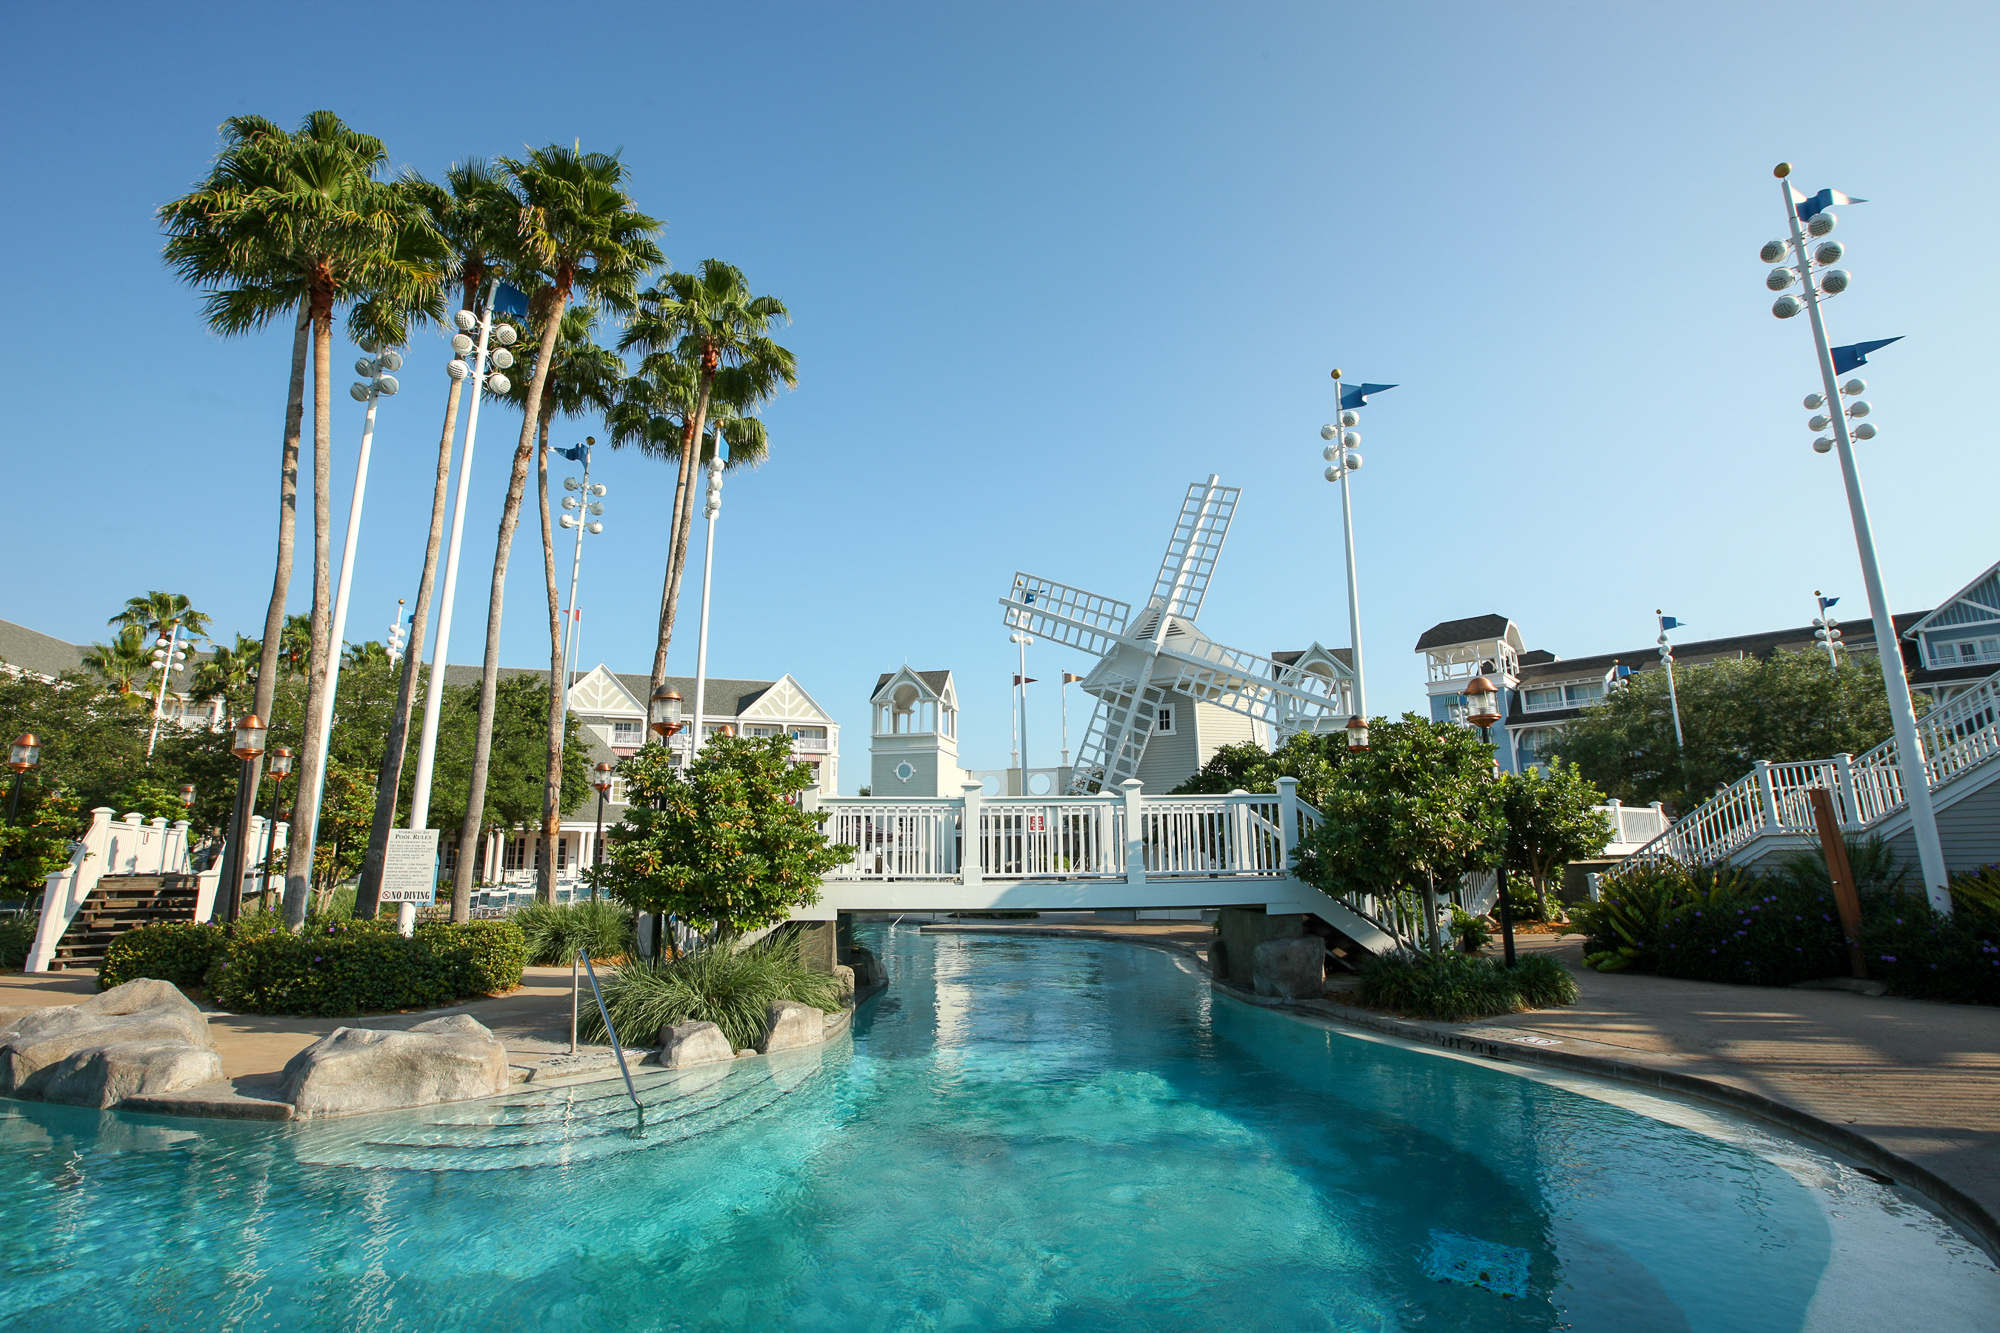 Stormalong Bay at Disney's Yacht Club and Beach Club